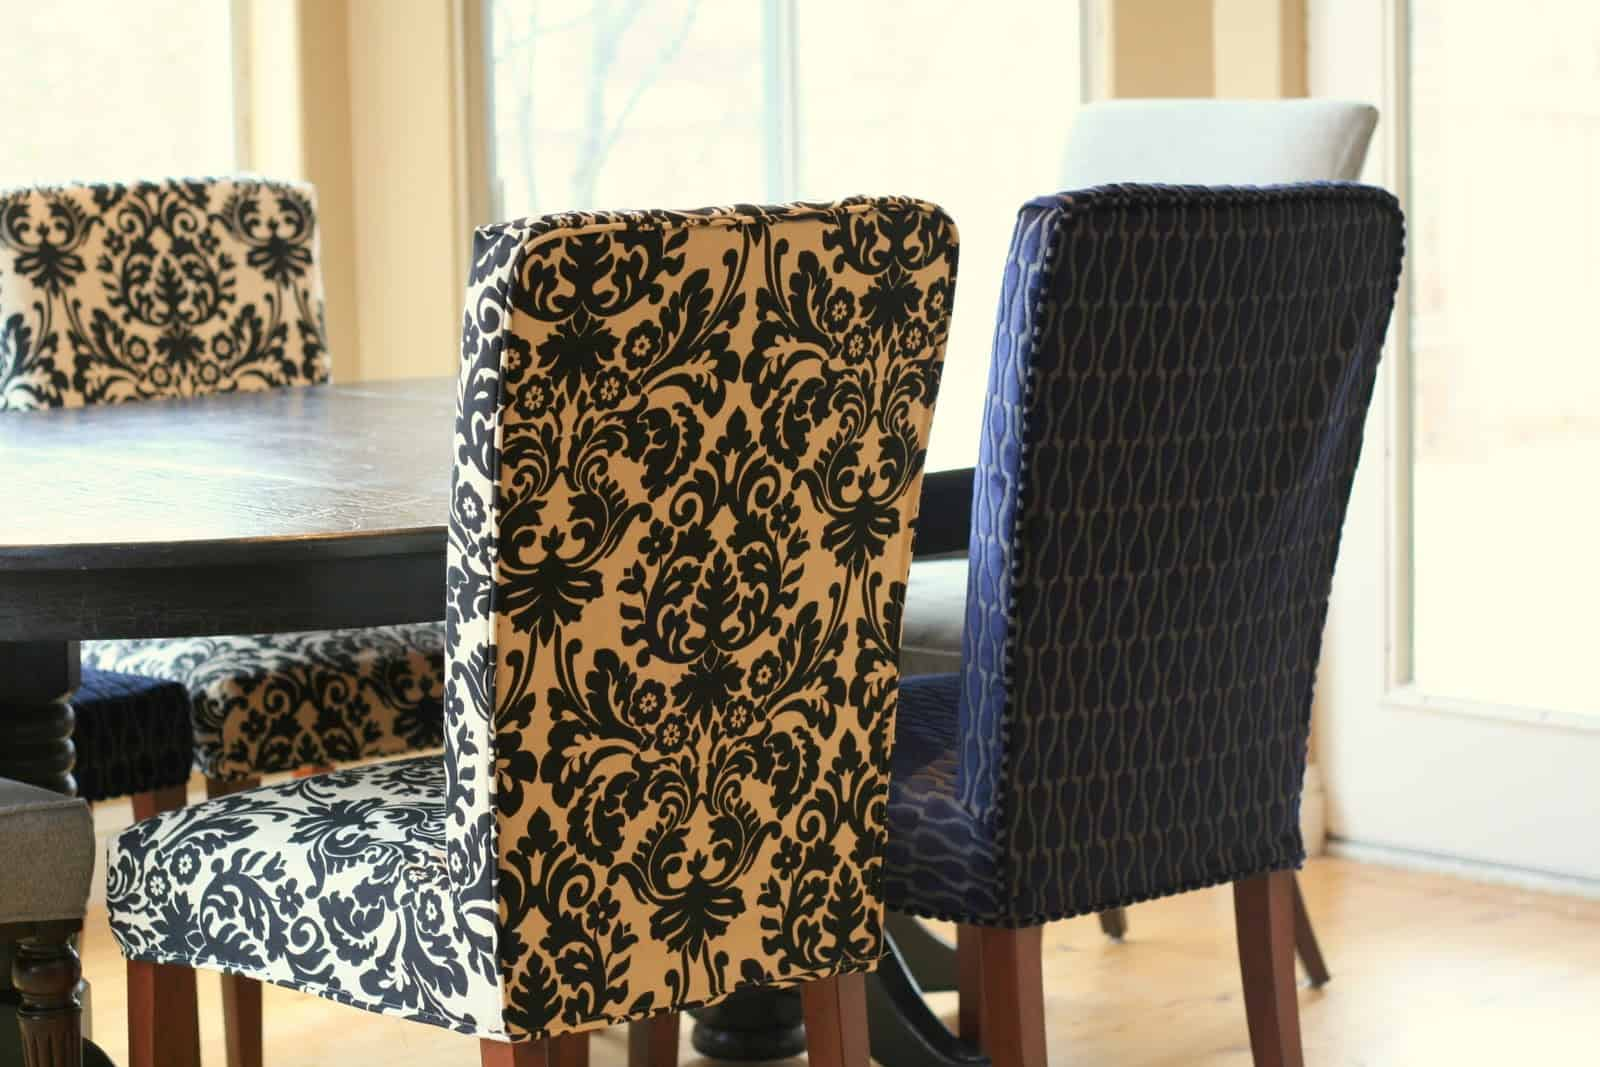 Floral chair covers are great as you are able to change them as often as you would like.